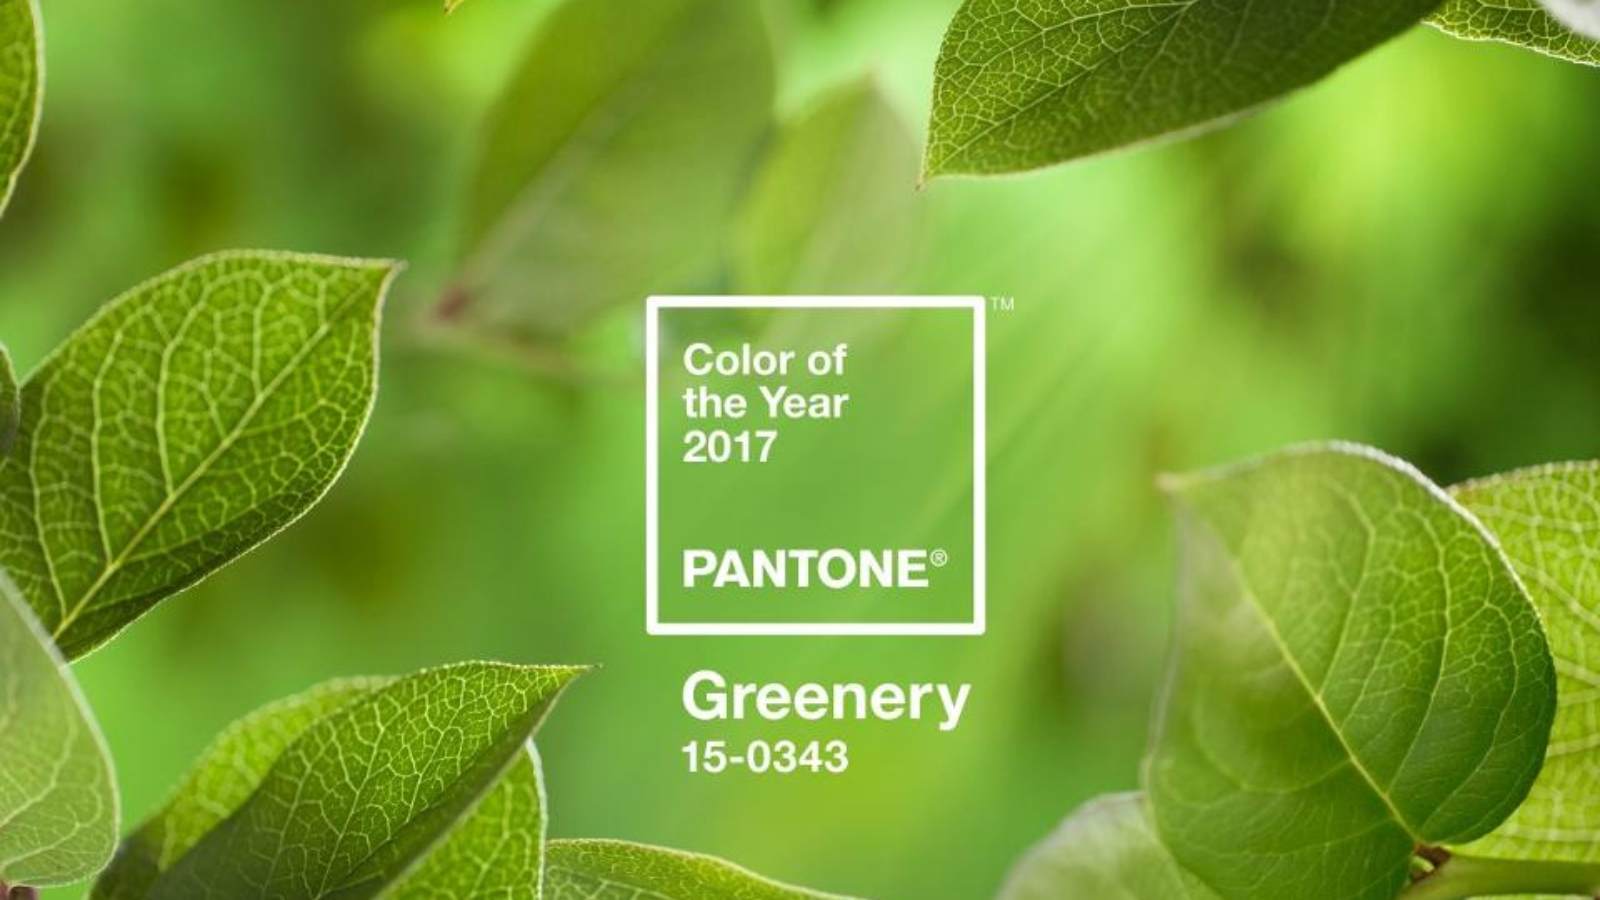 PANTONE-Color-of-the-Year-2017-Greenery-15-0343-leaves-2732x2048-1200x900.jpg